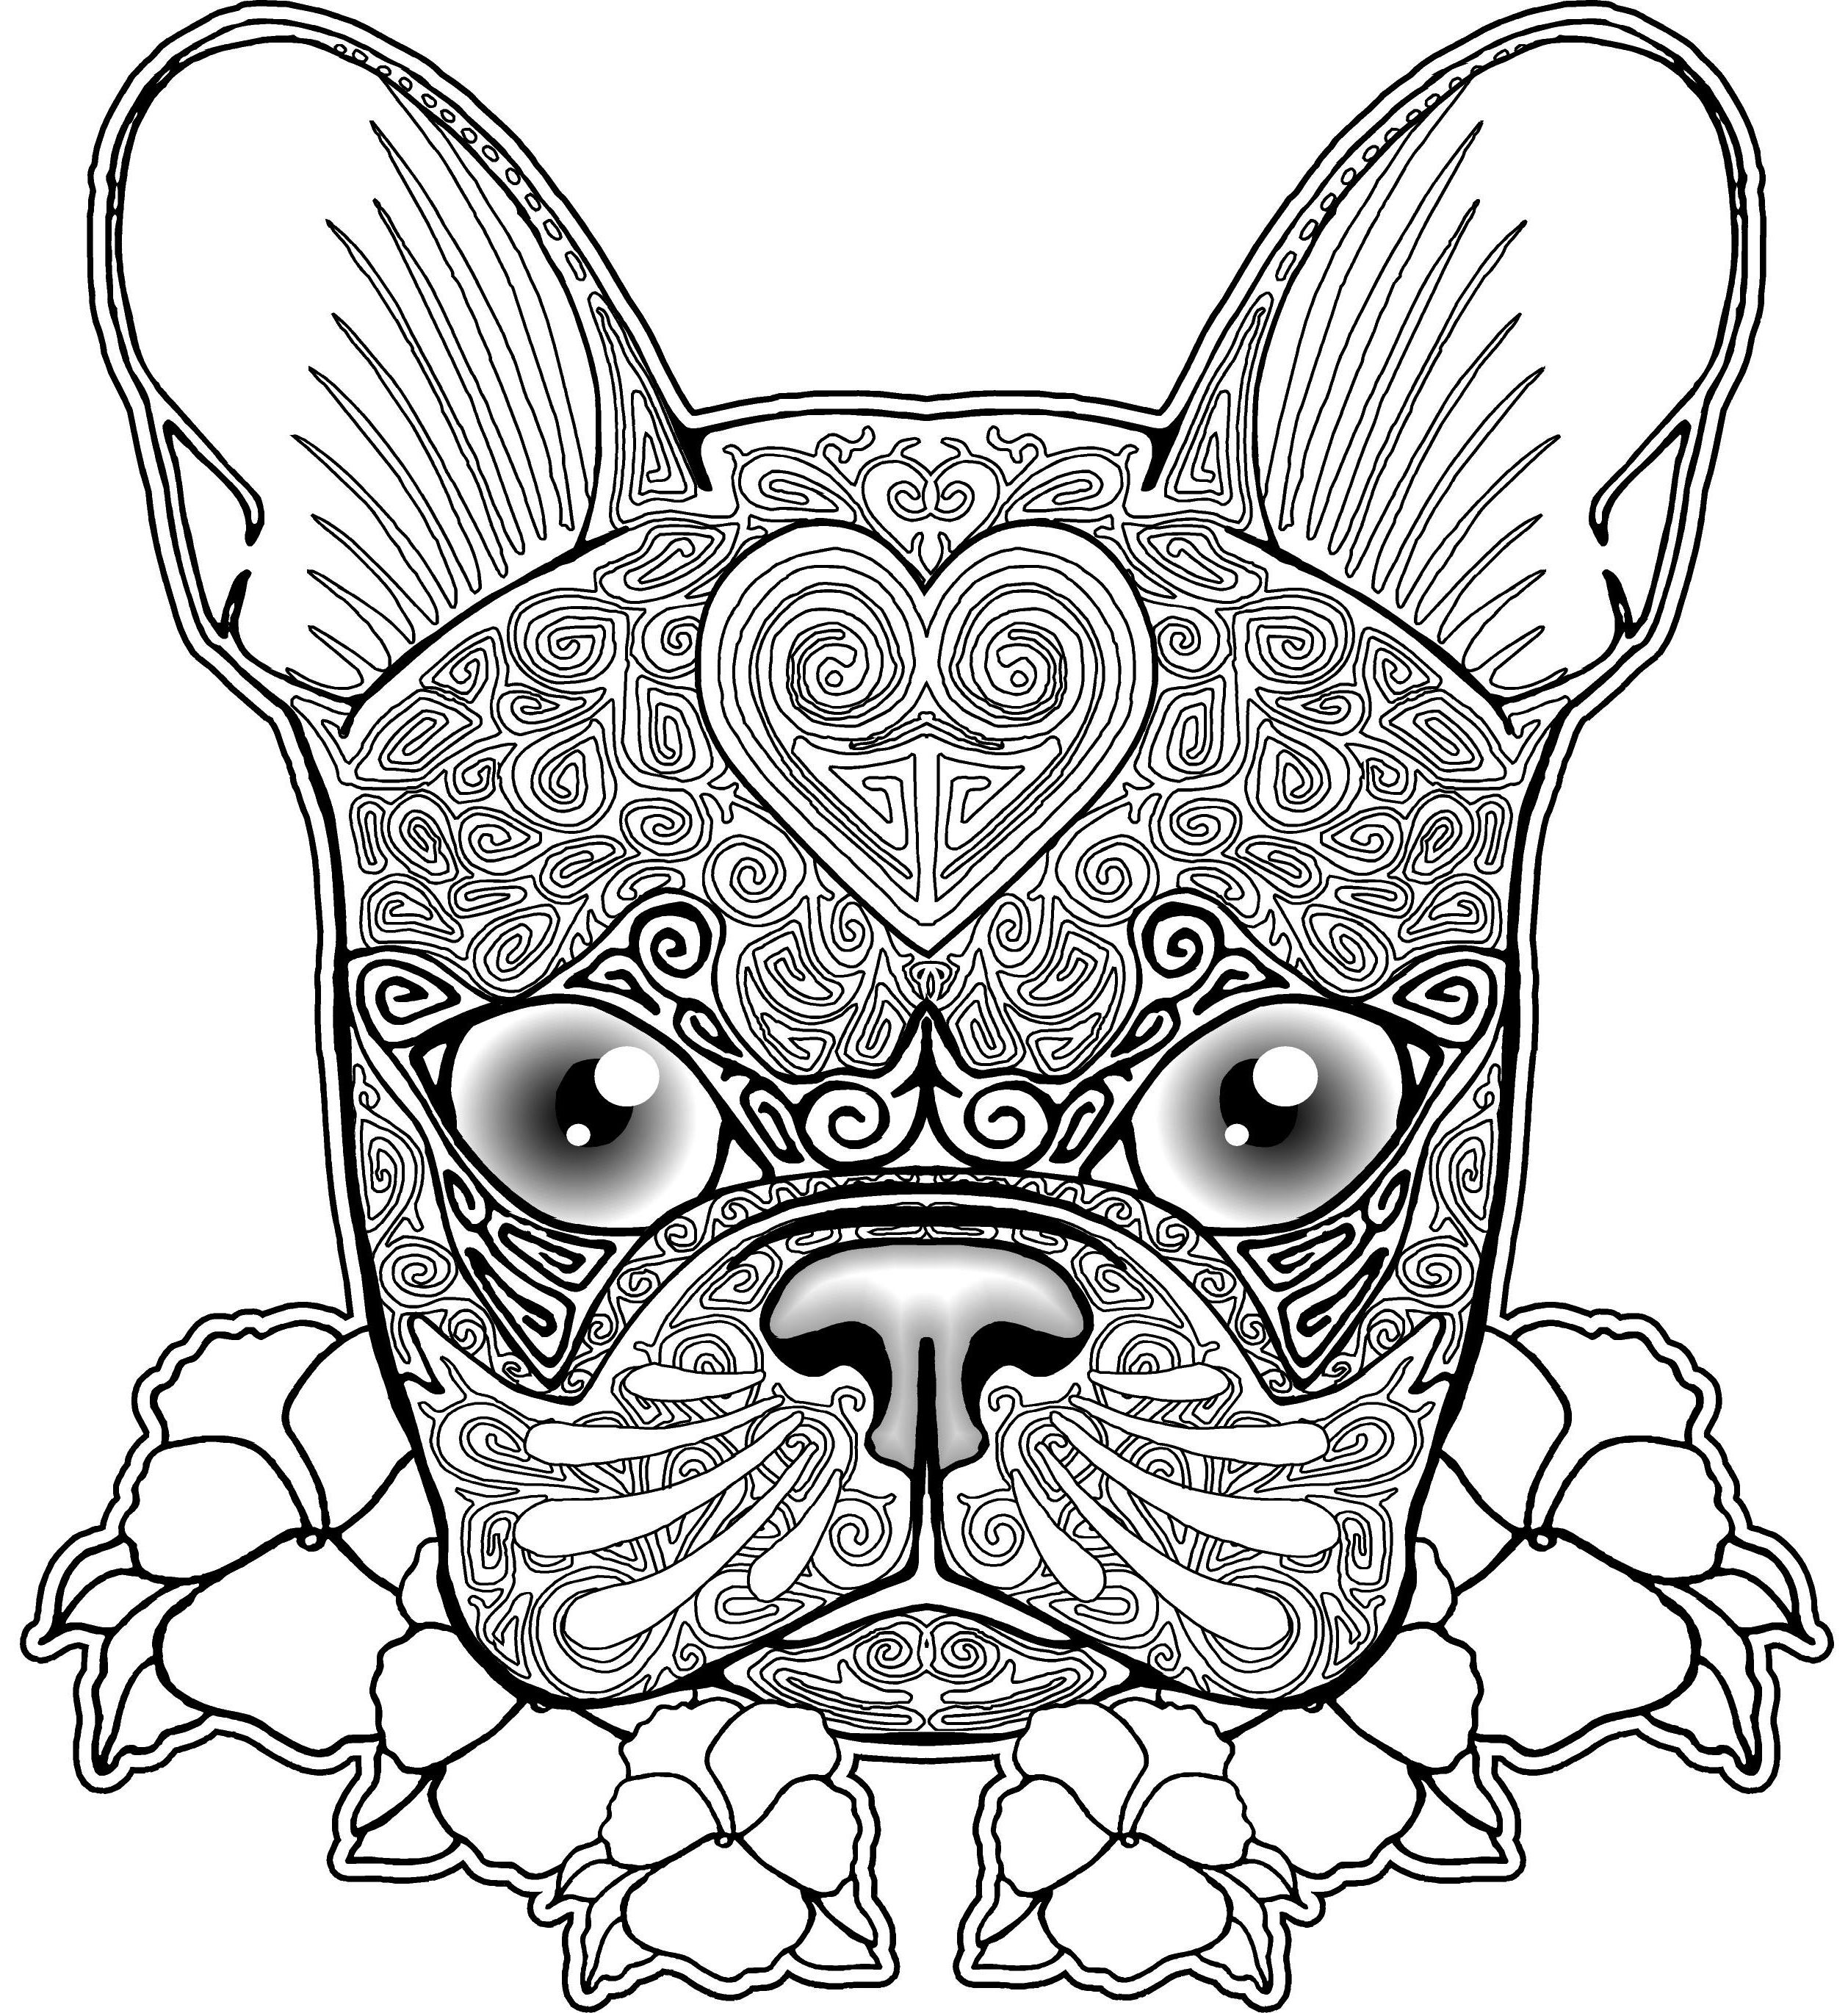 dog coloring page, dog coloring pages, free coloring page, free ...